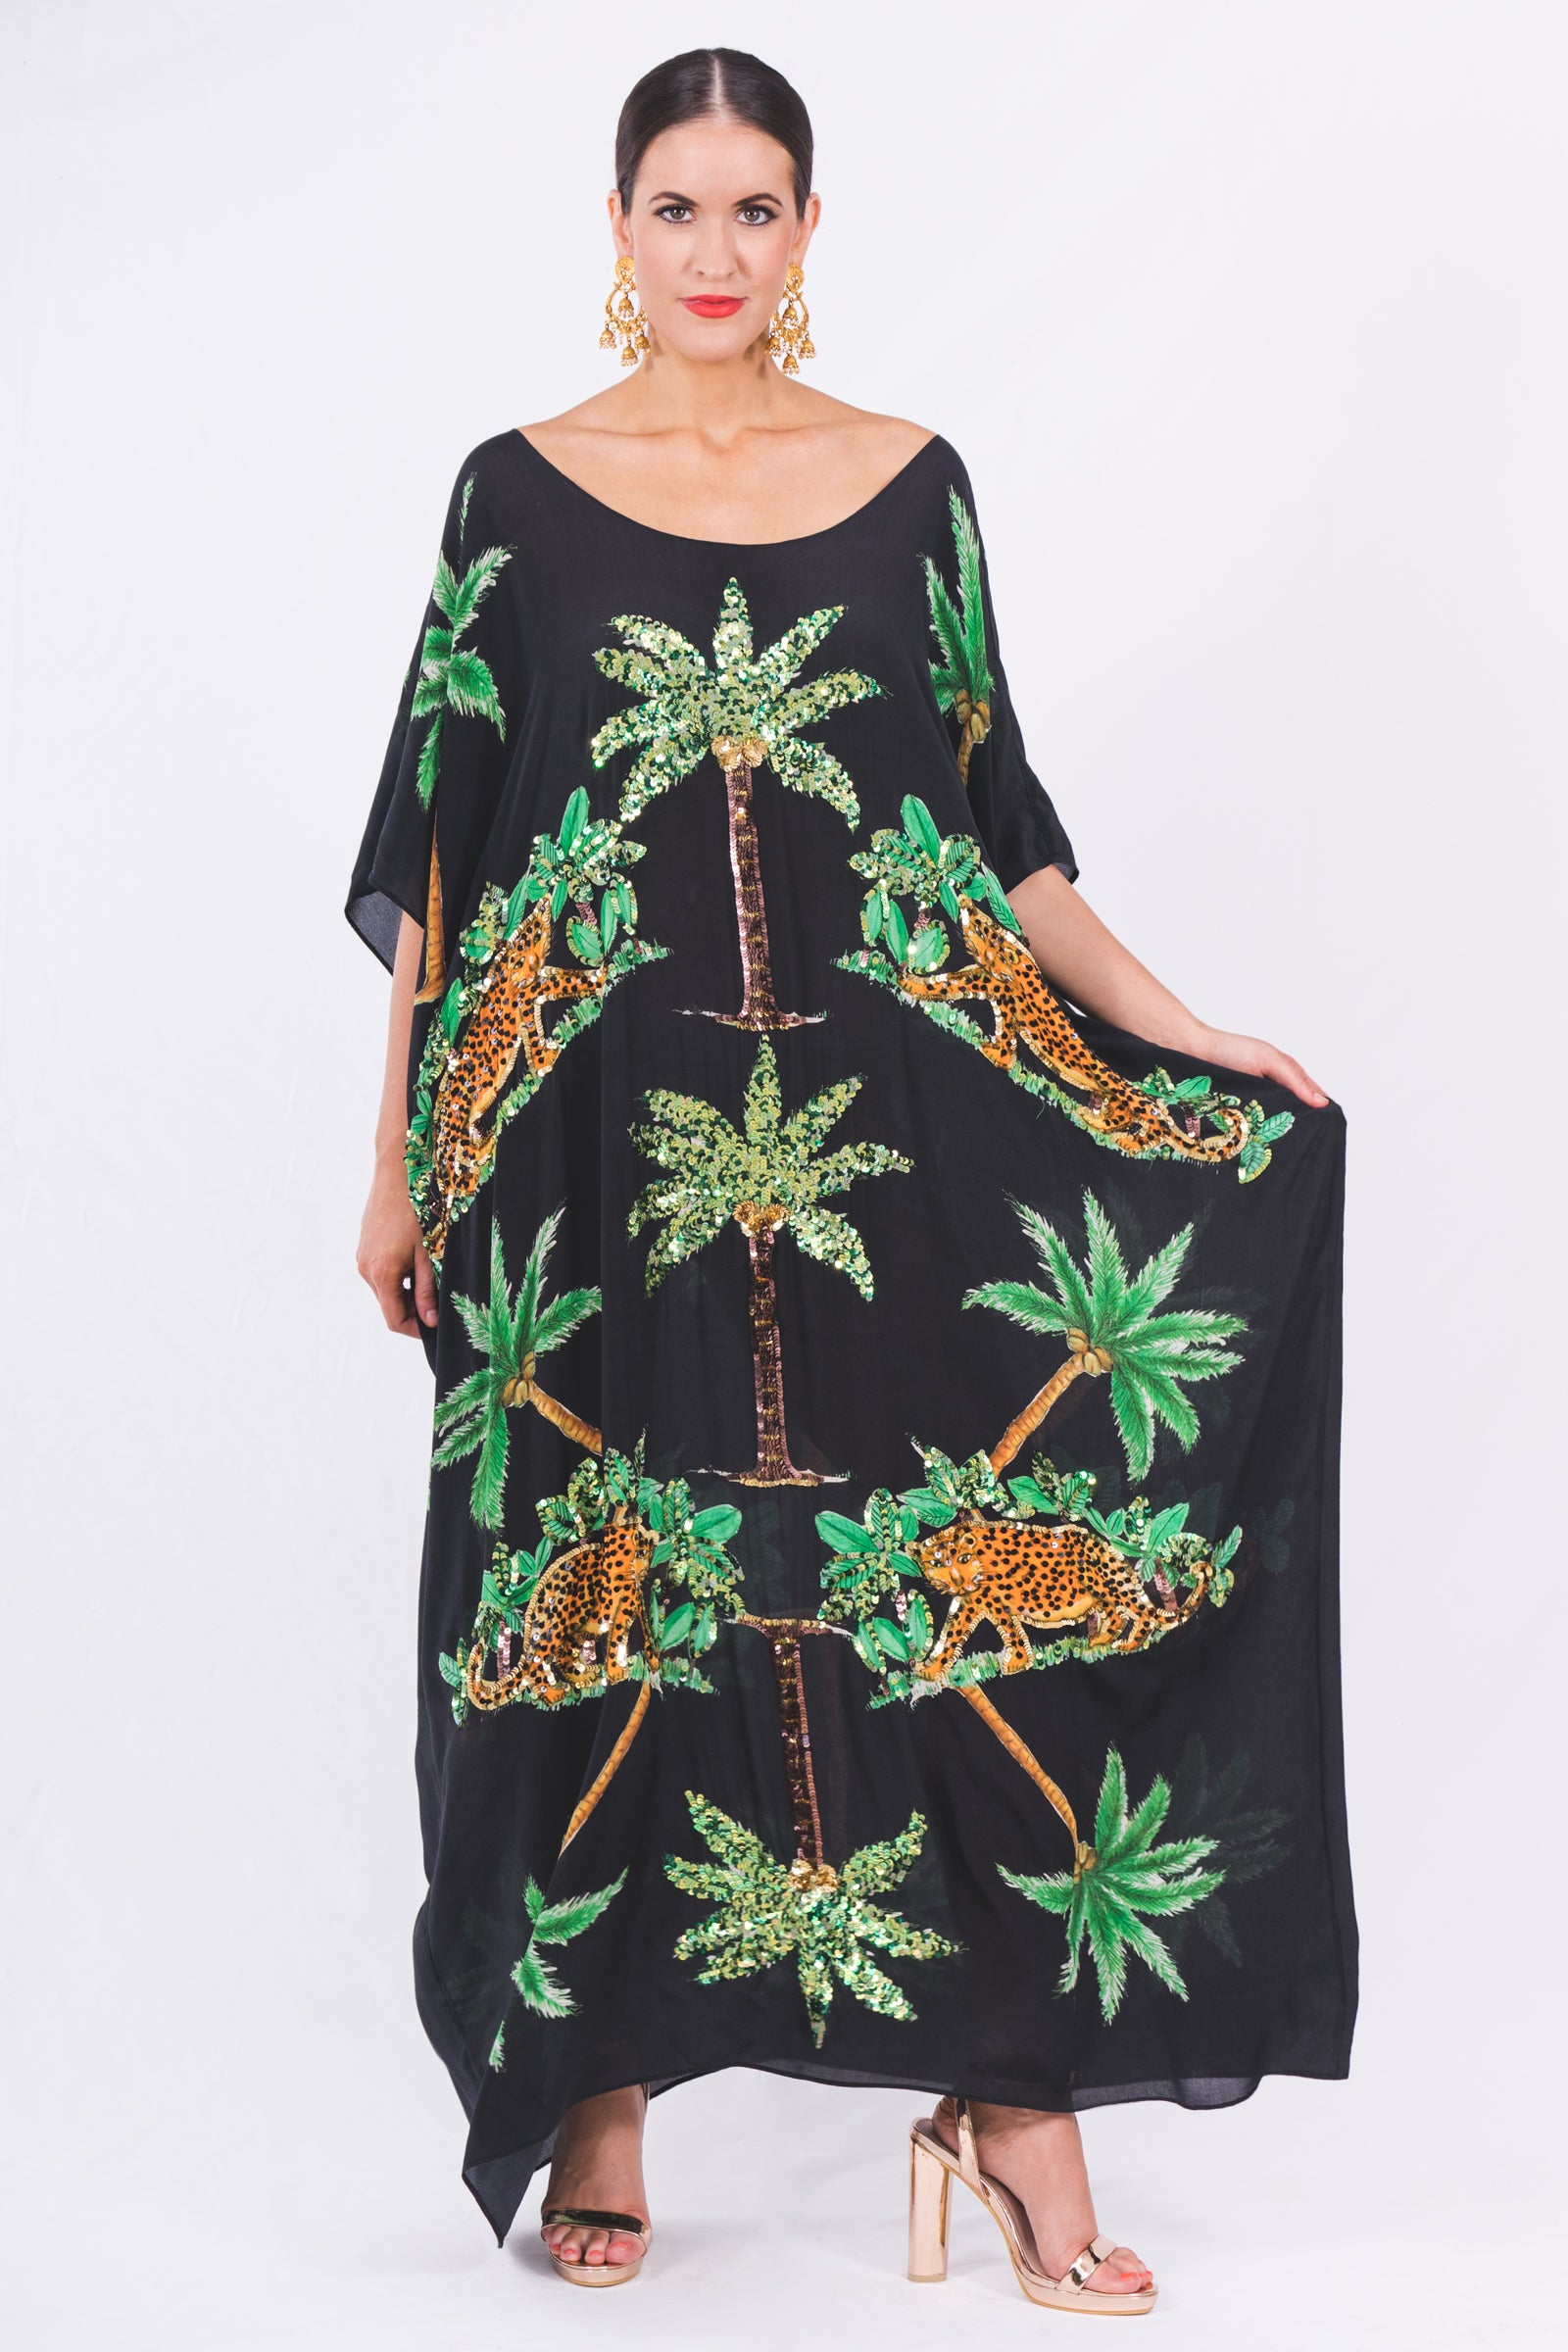 The Black Cheetah Kaftan by Bonita Collective